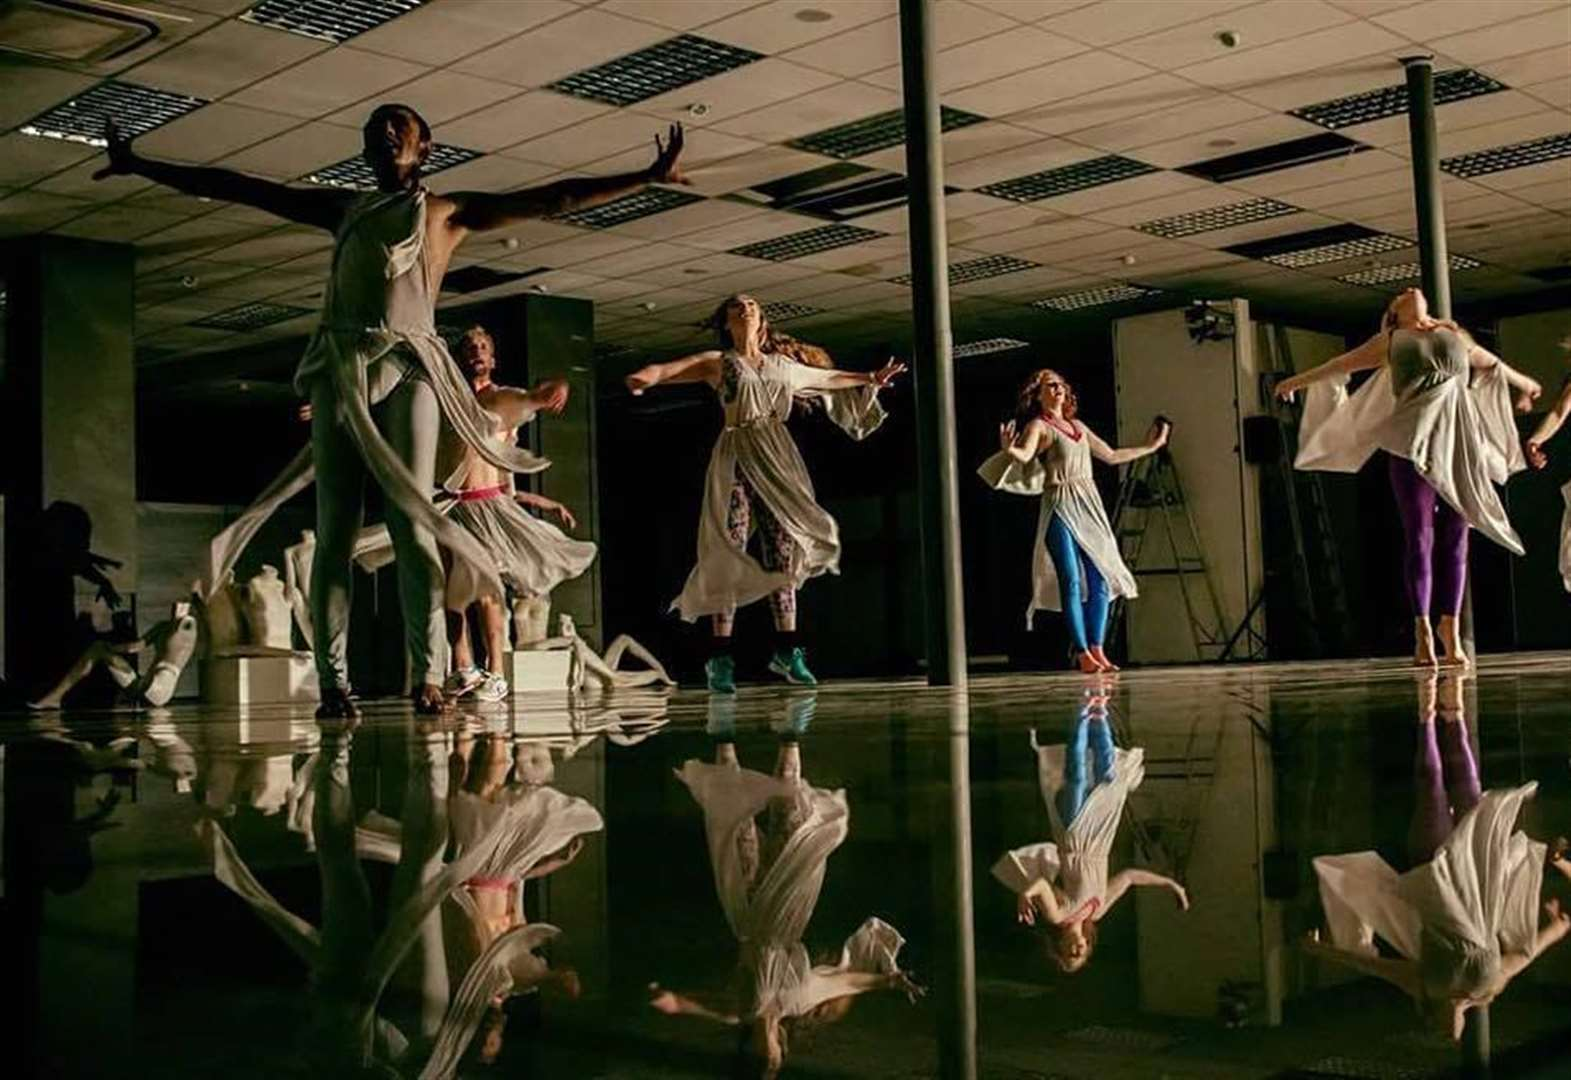 Show explores 200 years of dance